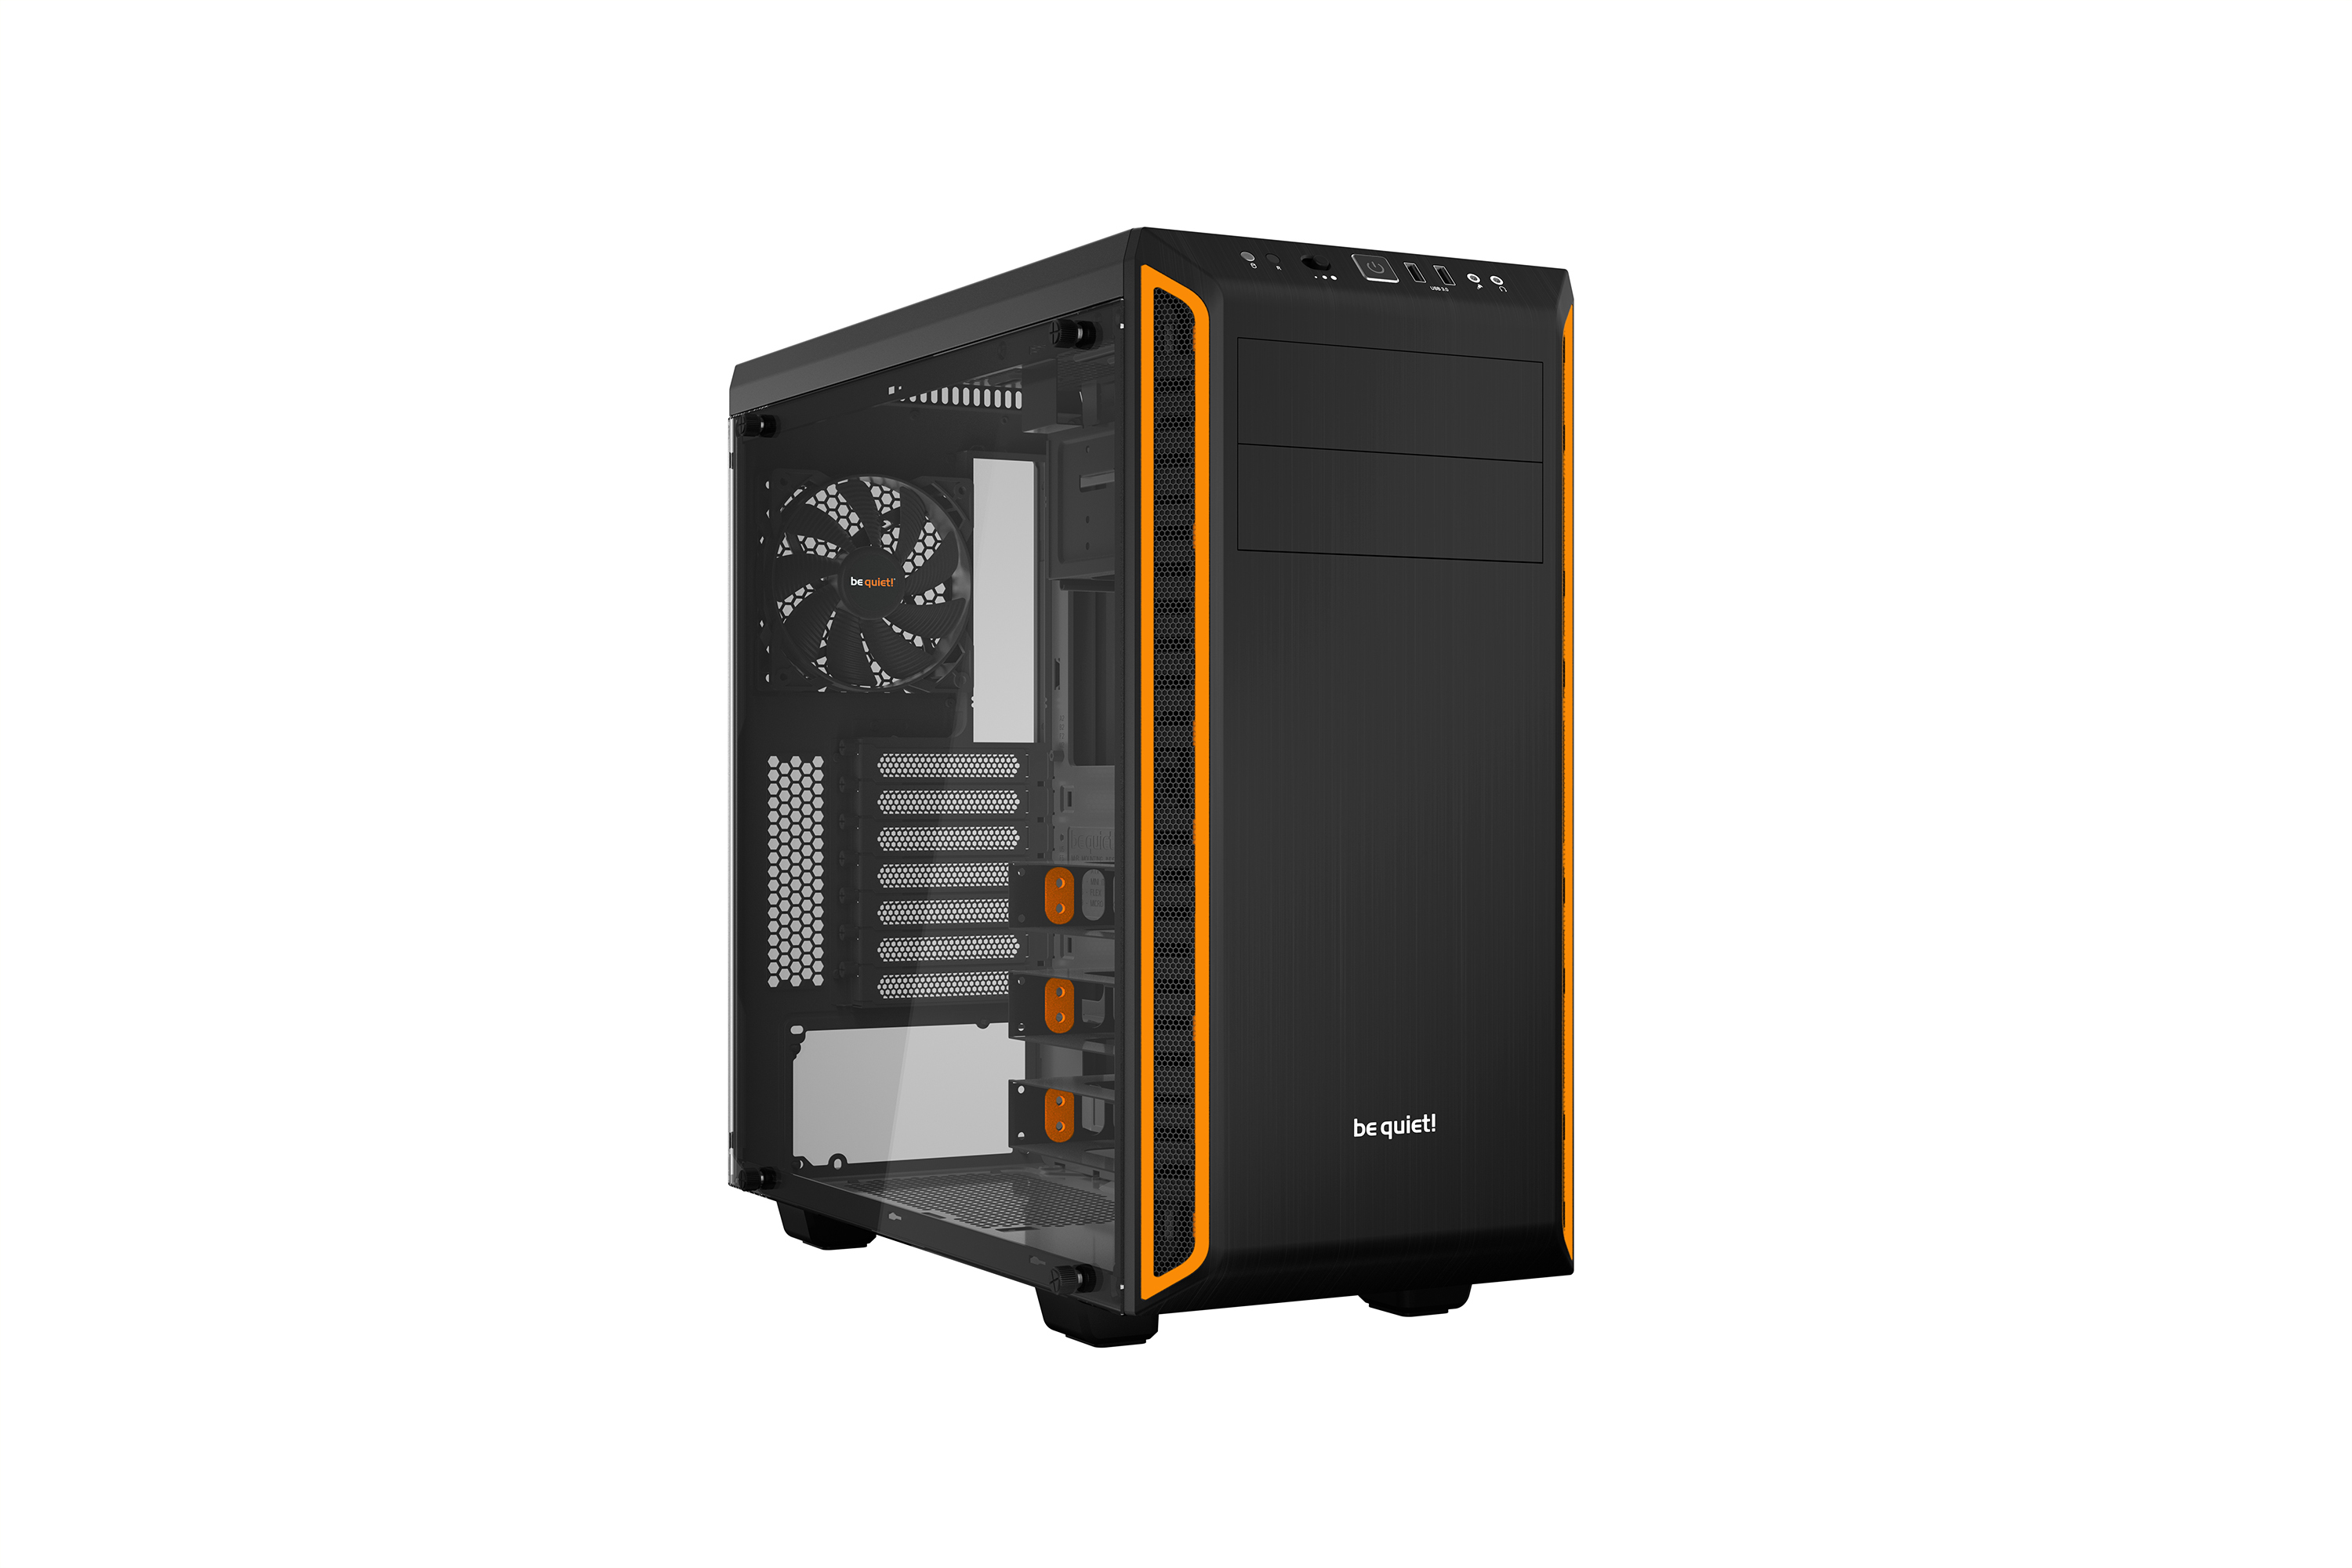 be quiet! Pure Base 600 Window Orange, 492 x 220 x 470, IO-panel 2x USB 3.0, HD Audio, 2x 5,25, 3x 3,5, 2x 2,5, inc 1x 140 mm en 1x 120 mm Pure Wings 2, dual air channel cooling, 3 step fan controller 3x3 pin, Watercooling ready, Glass Windows Side Panel